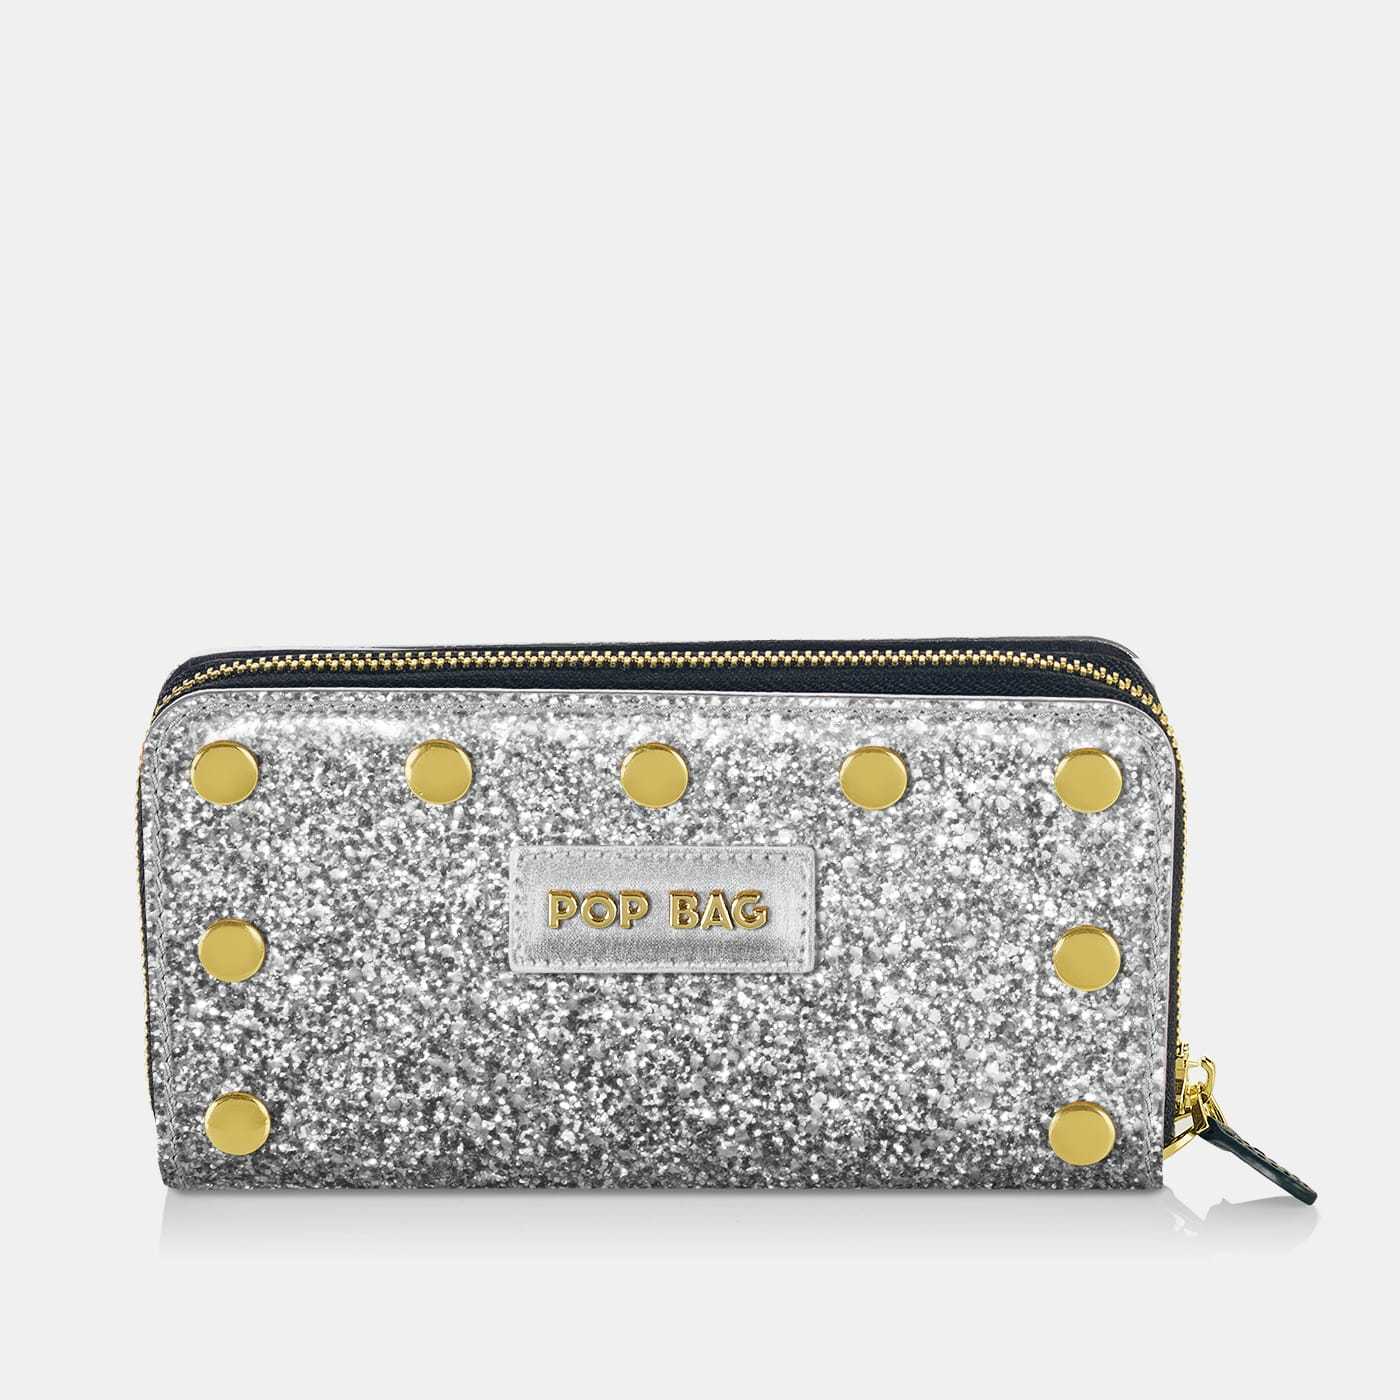 Pop Sparkling Wallet Cover - Silver Glitter - On Wallet